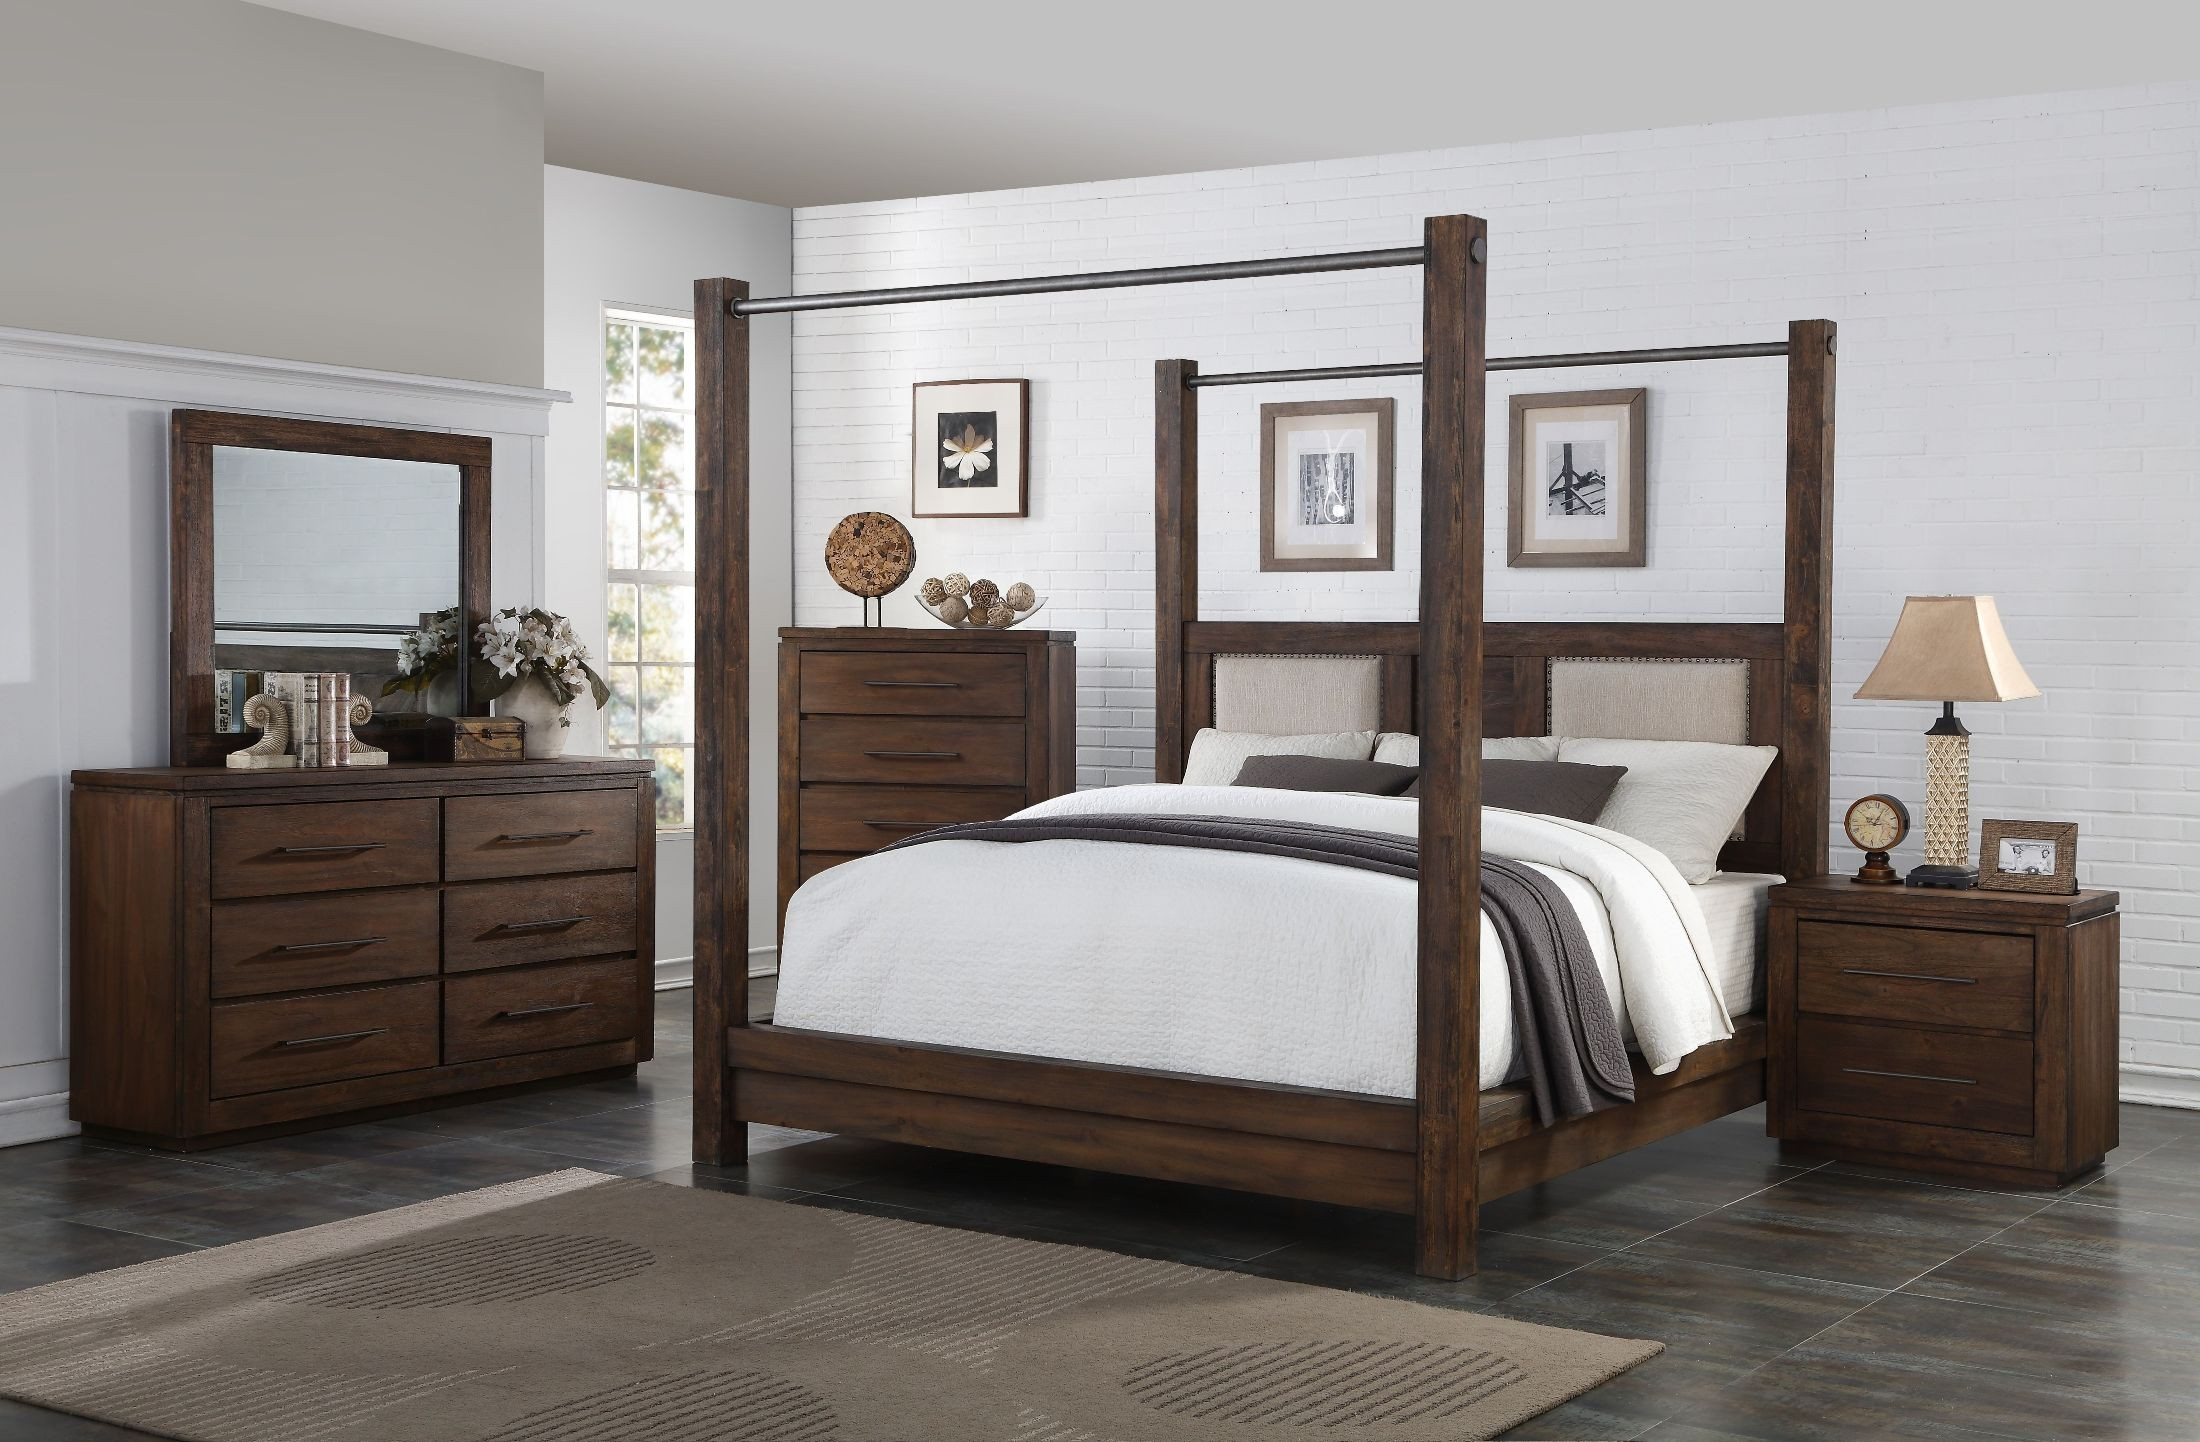 Heartstone Manor Caremel Poster Canopy Bedroom Set From New Classic Coleman Furniture